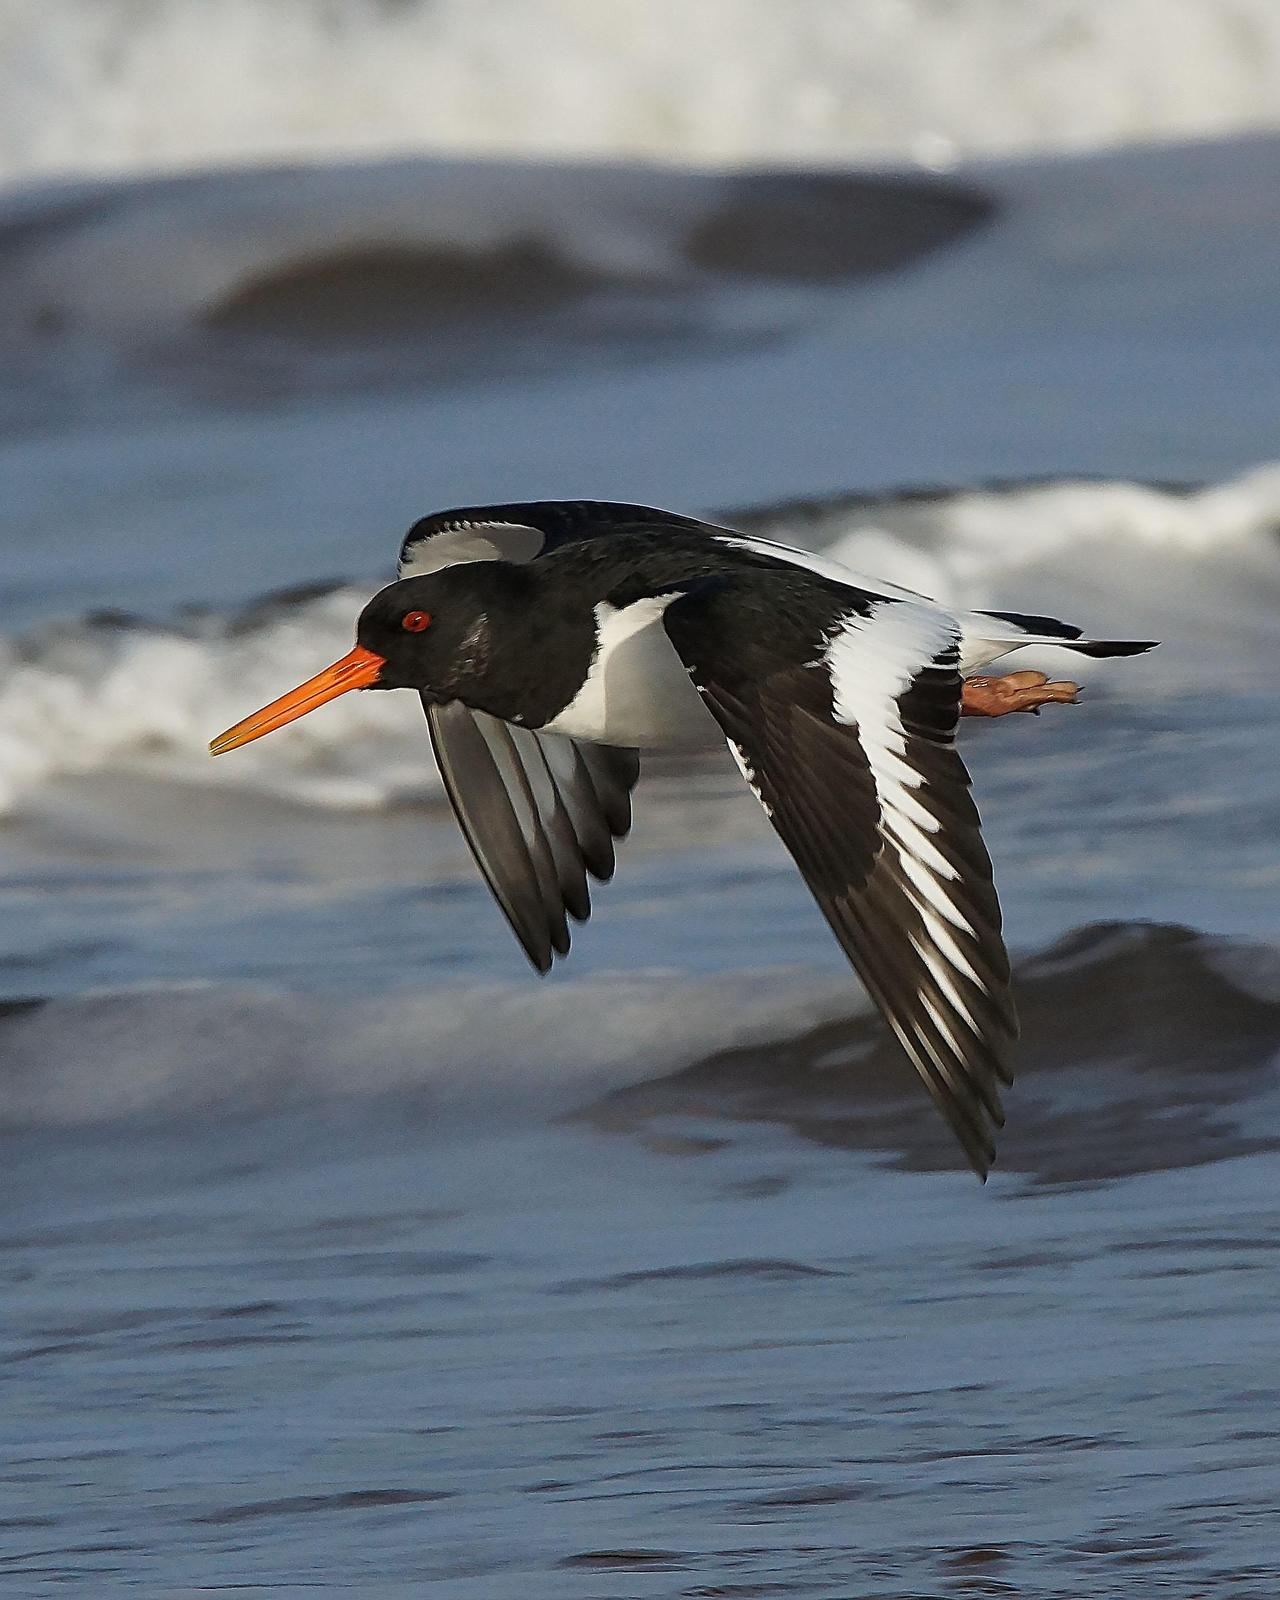 Eurasian Oystercatcher Photo by Steve Percival